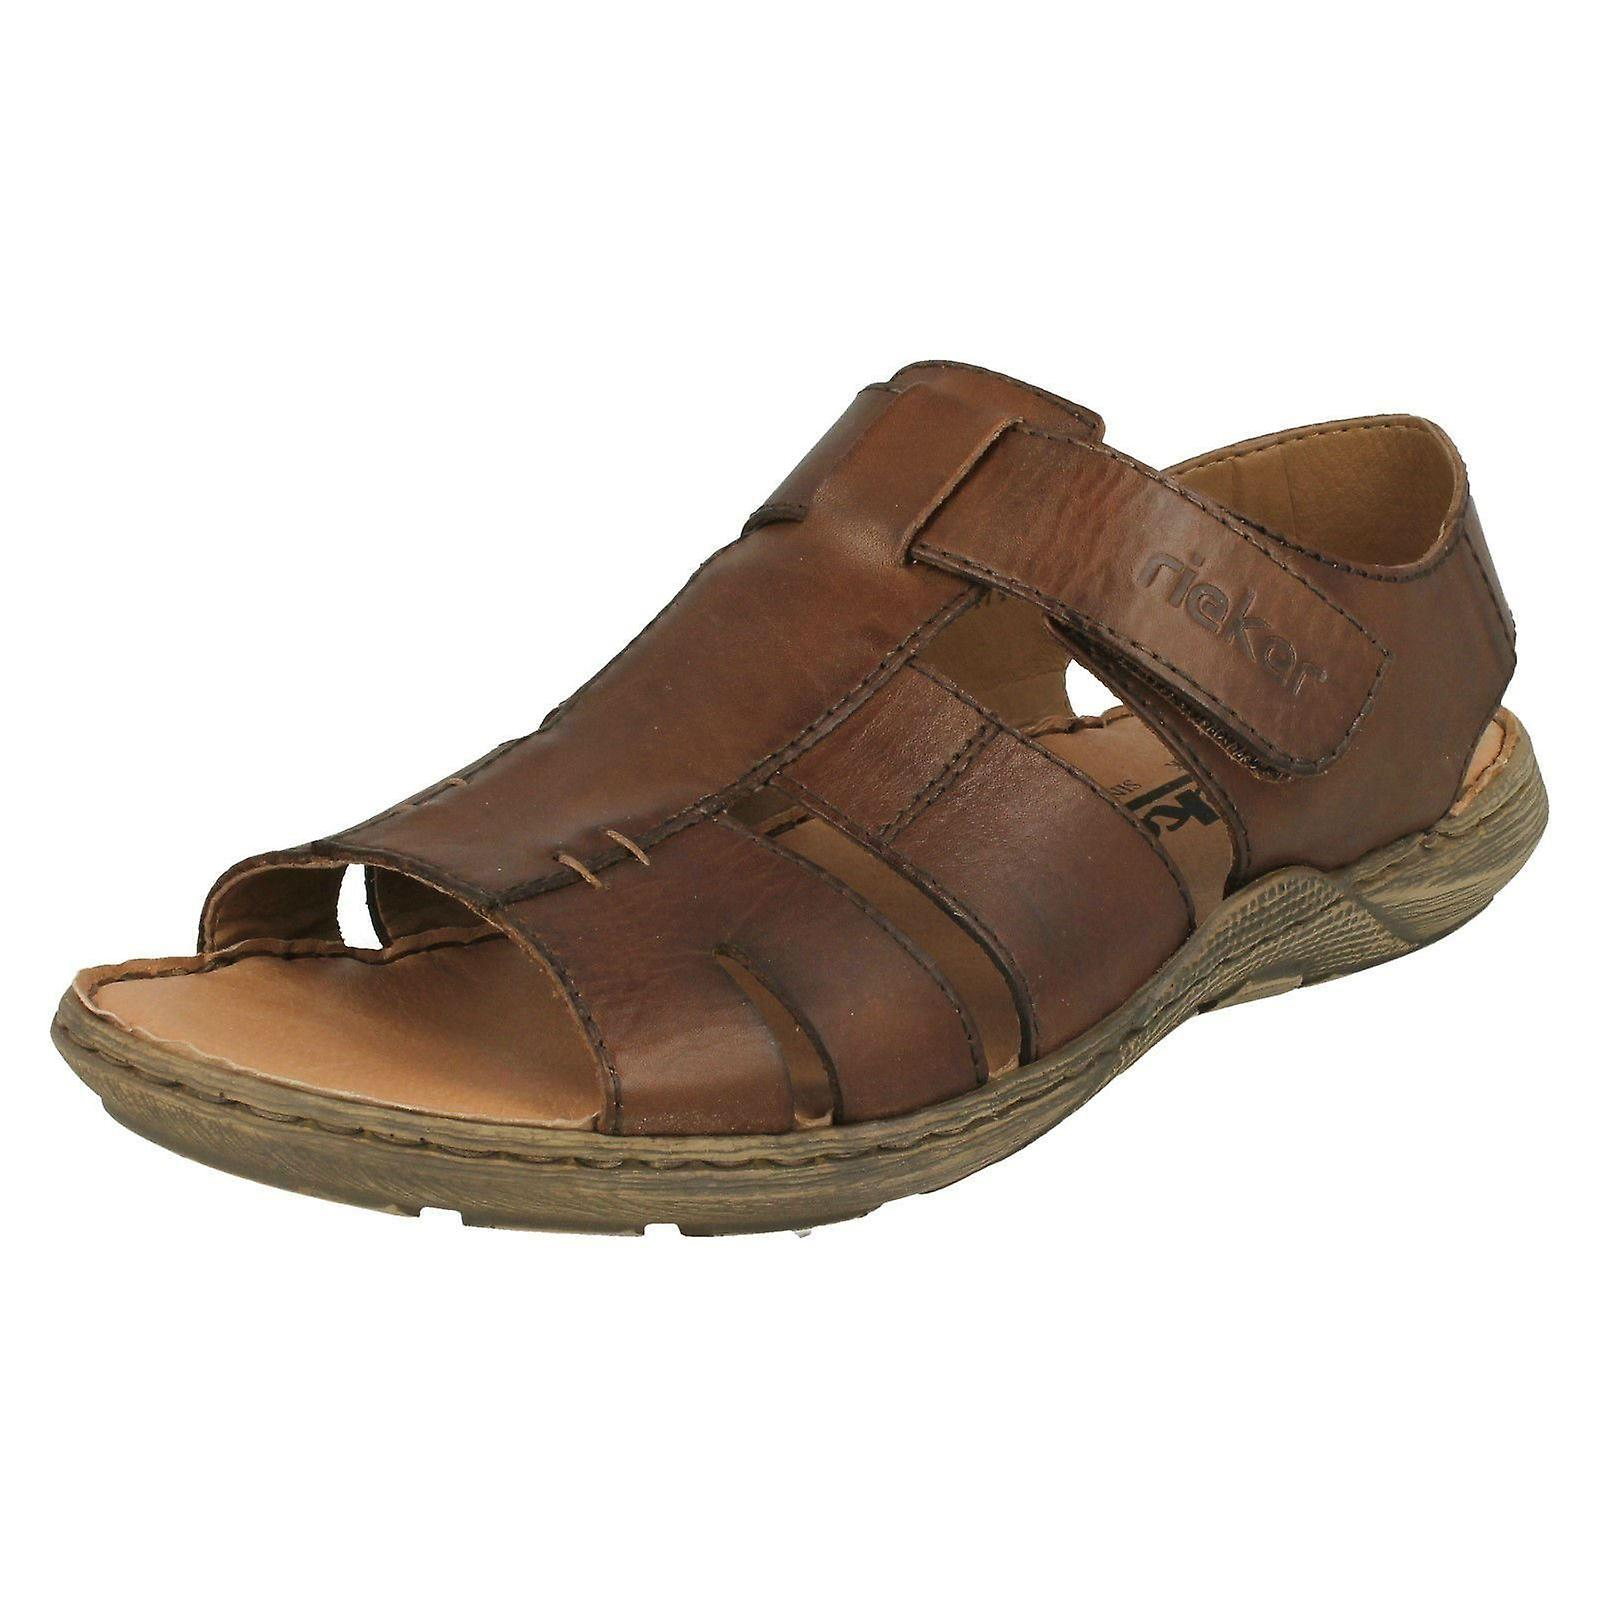 a2bcbbf88e61 Mens Rieker Casual Strapped Sandals 22073-25 - Brown Leather - UK Size 9 -